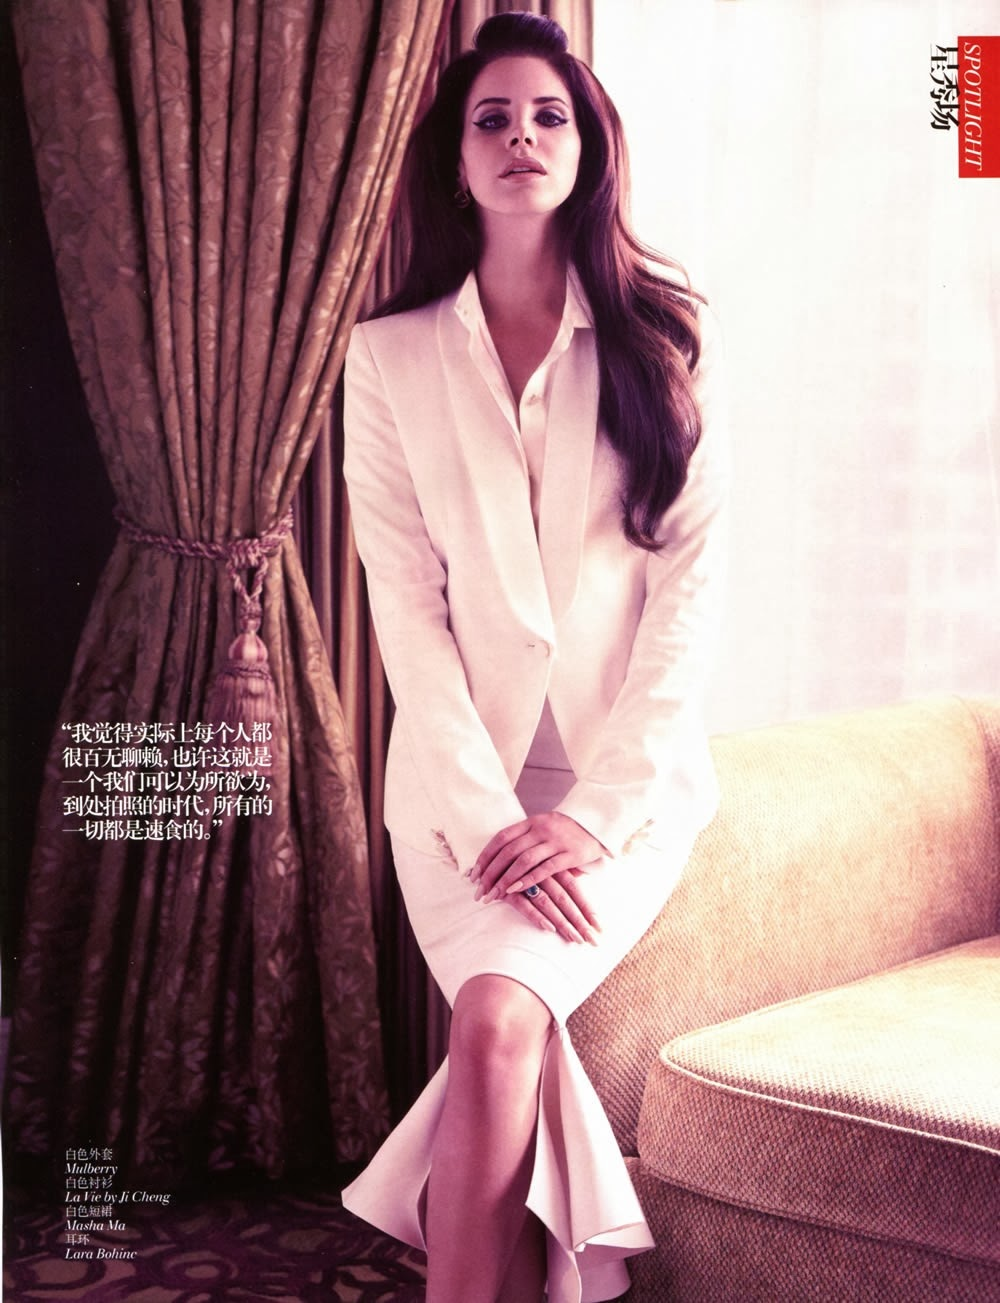 Lana Del Rey By Chris Nicholls For Fashion Magazine: MilaneseGAL: Lana Del Rey Vogue China 2013 And Live